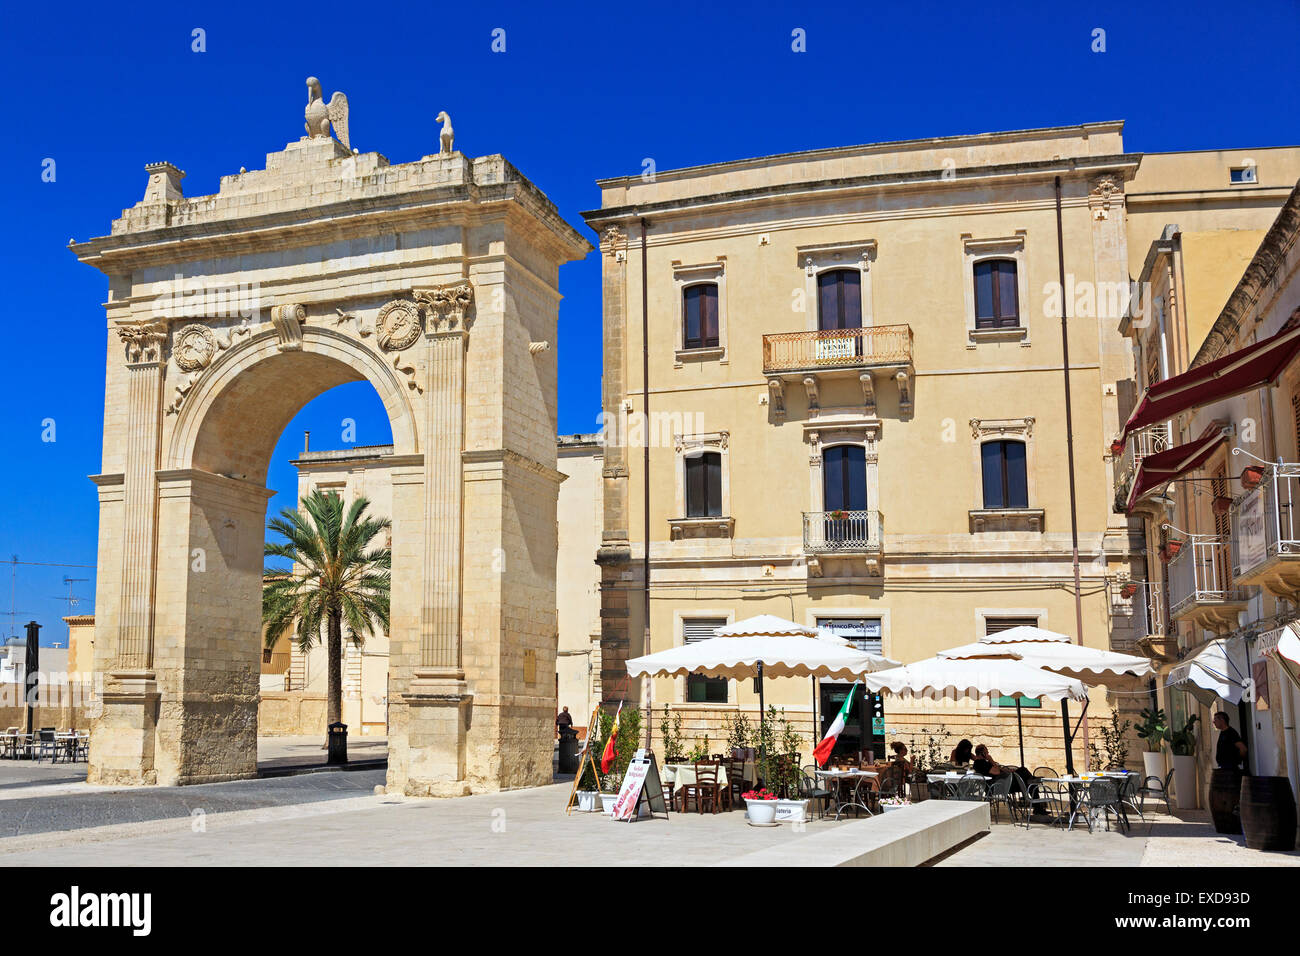 Porto Ferdinandea, Noto, Sicily the Royal Gate, erected in 1838 to greet King Ferdinand II, and access to Corso - Stock Image